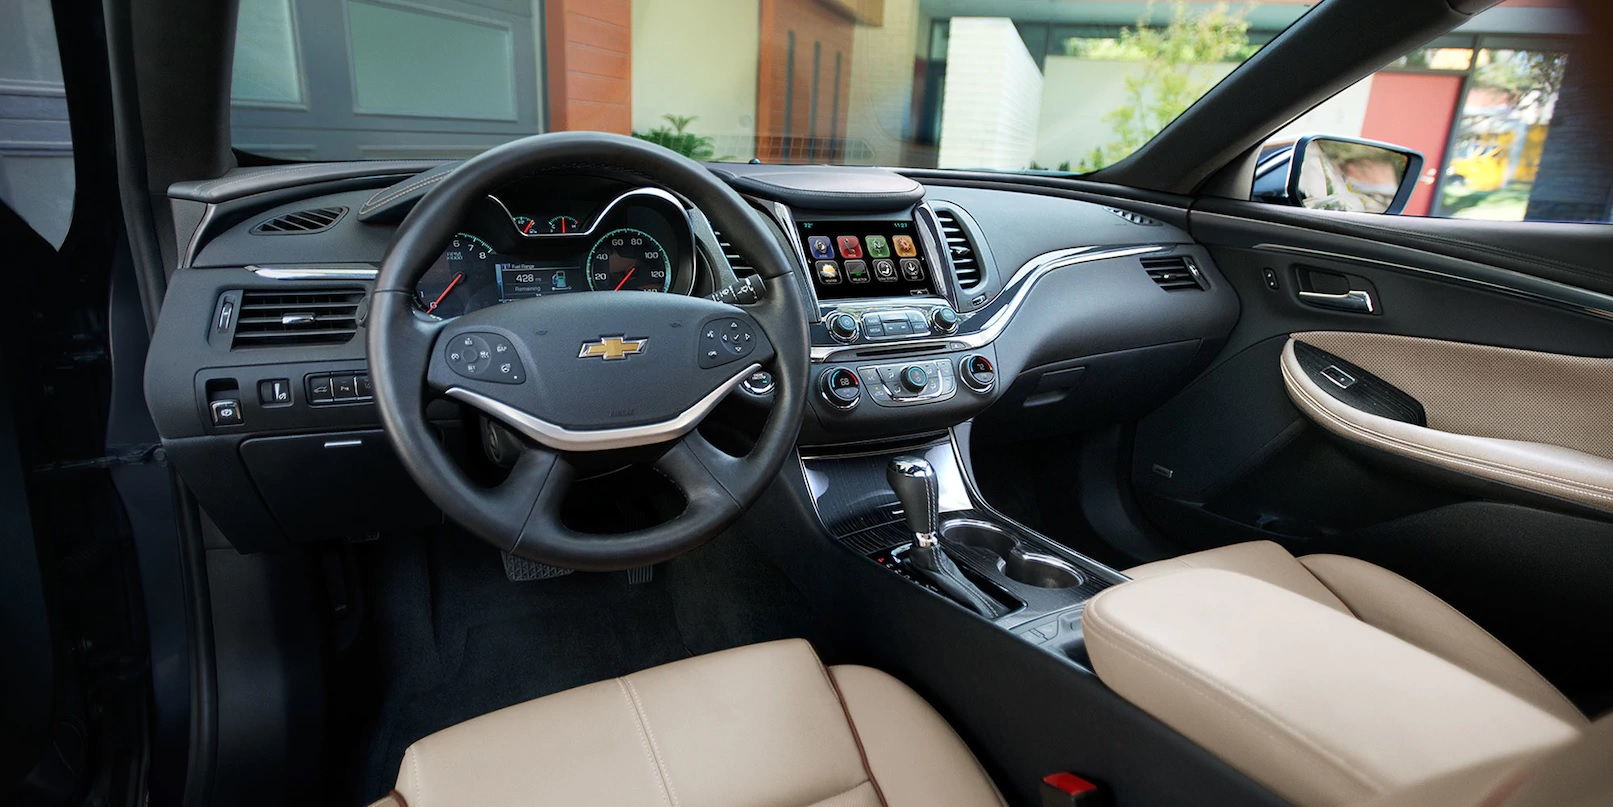 Interior of the 2018 Chevrolet Impala